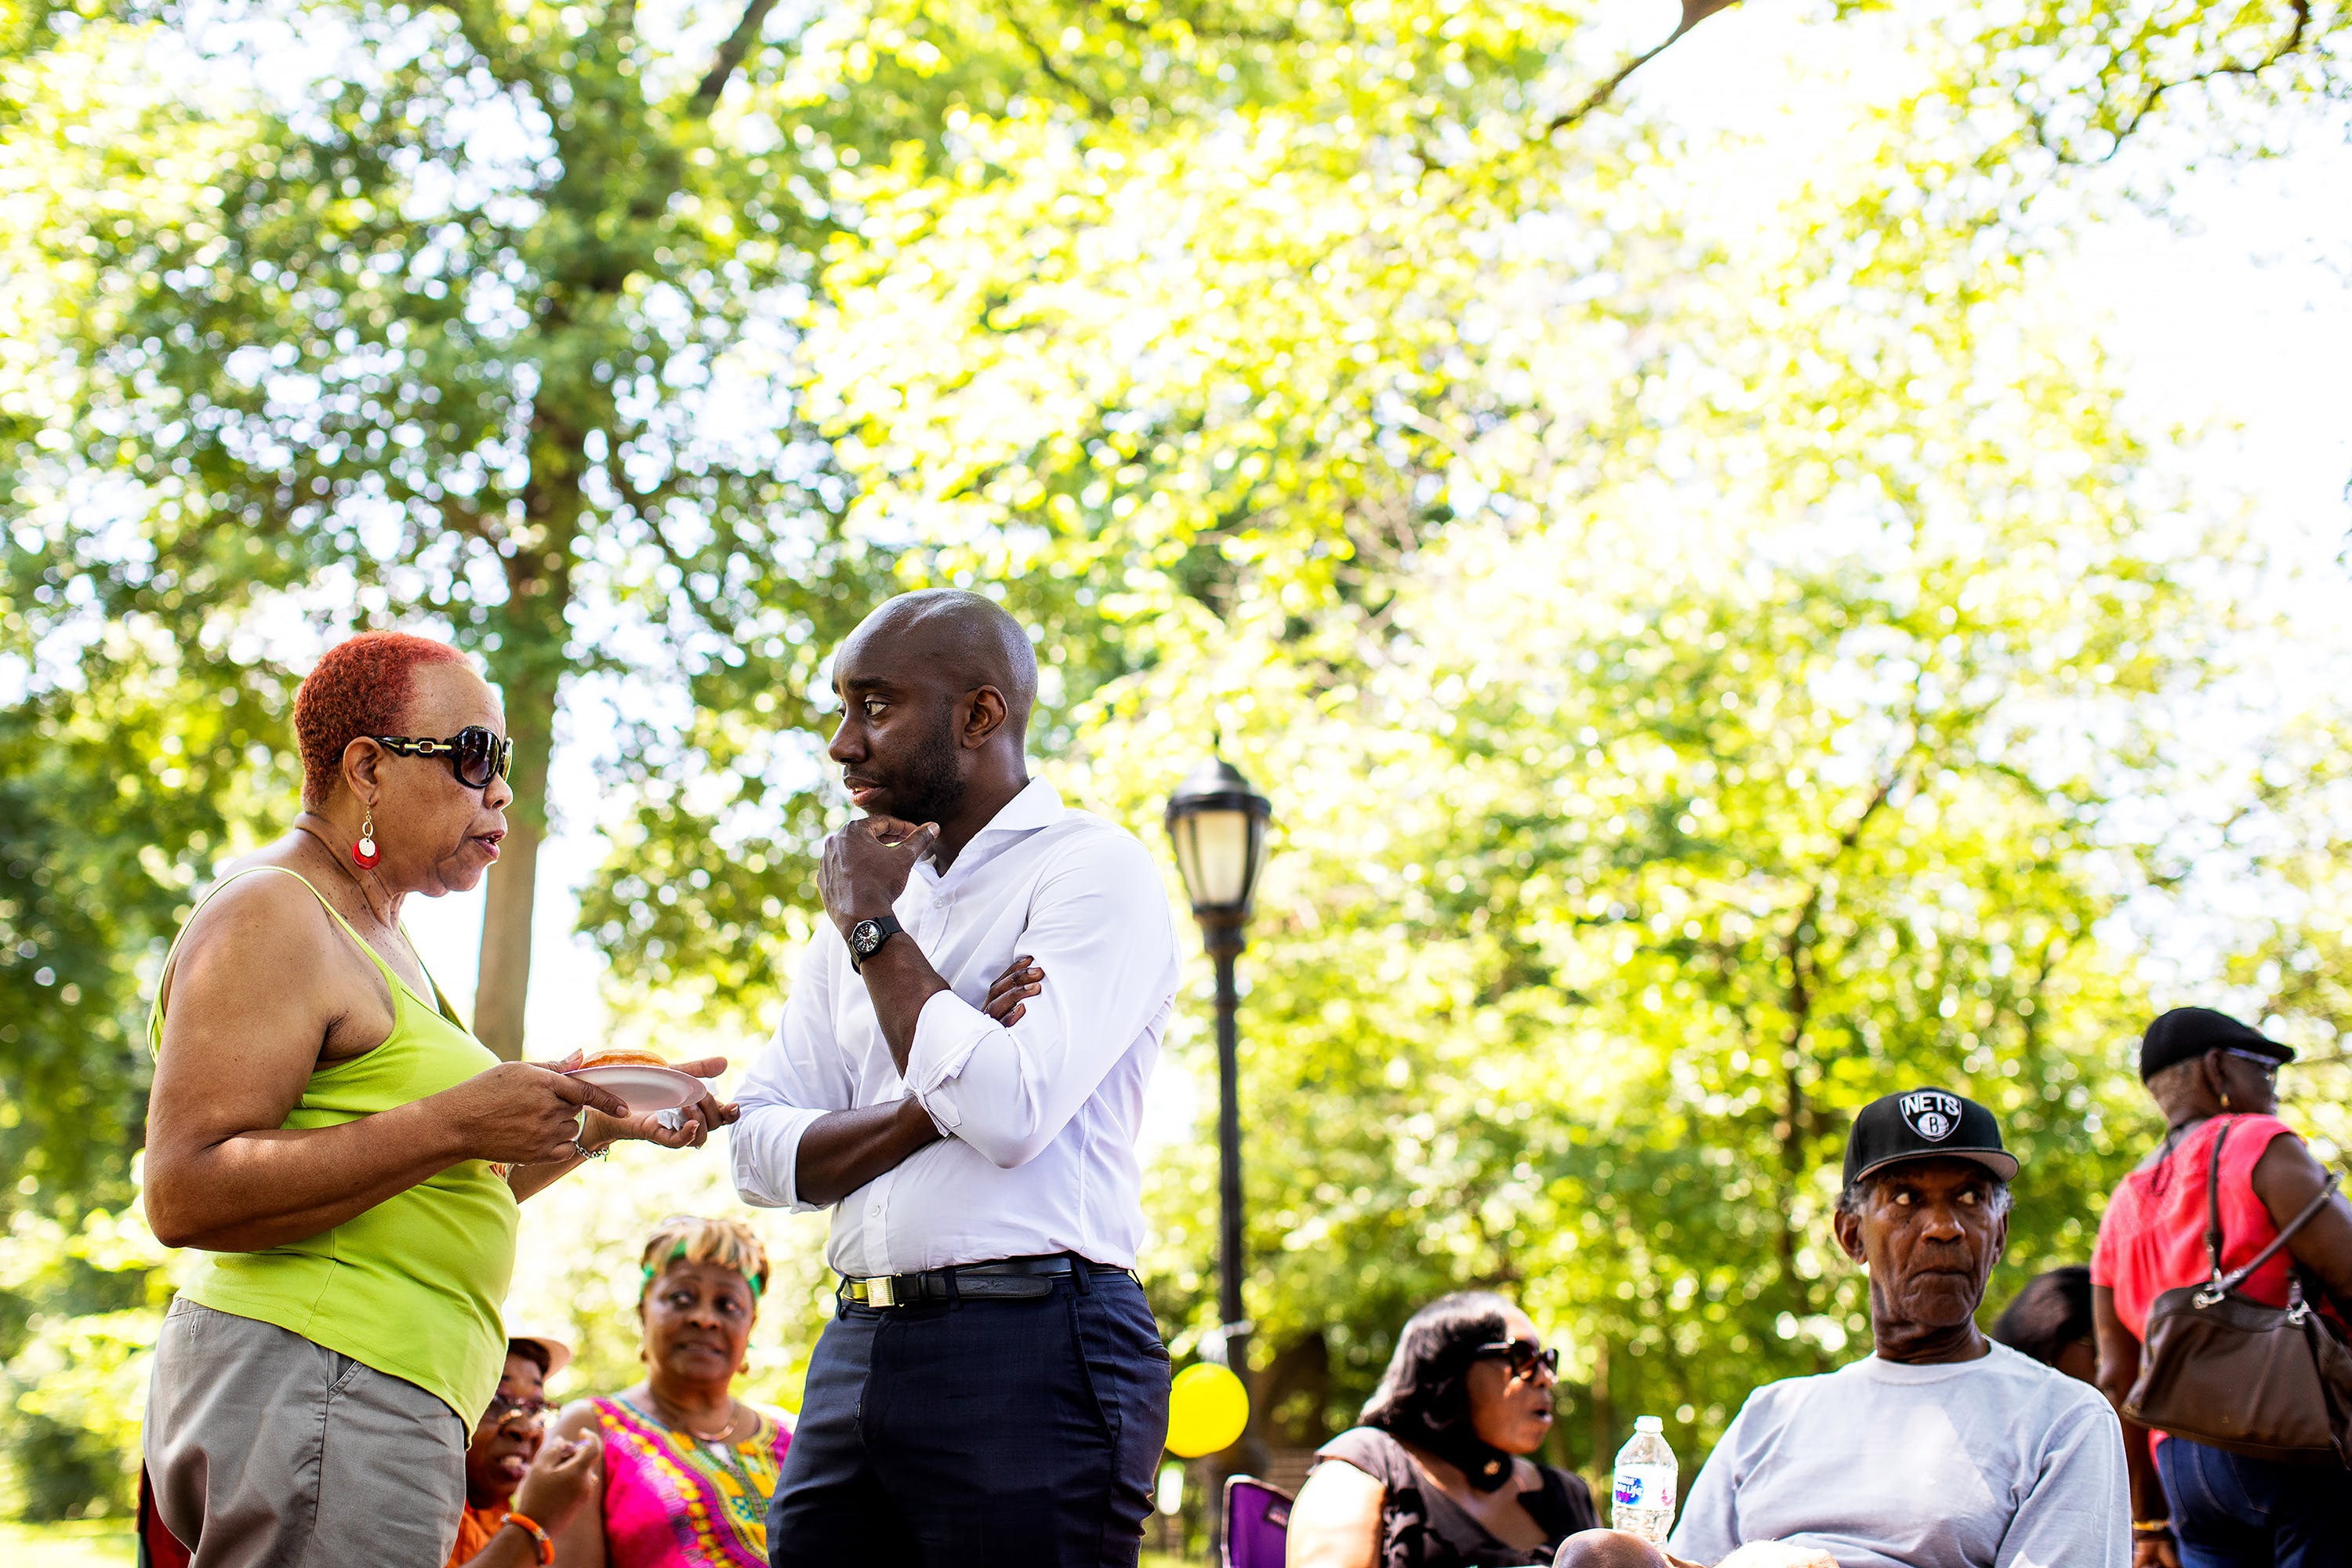 Adem Bunkeddeko at the Flatbush Tenant Coalition's cookout at Prospect Park in Brooklyn, New York, July 13, 2019.